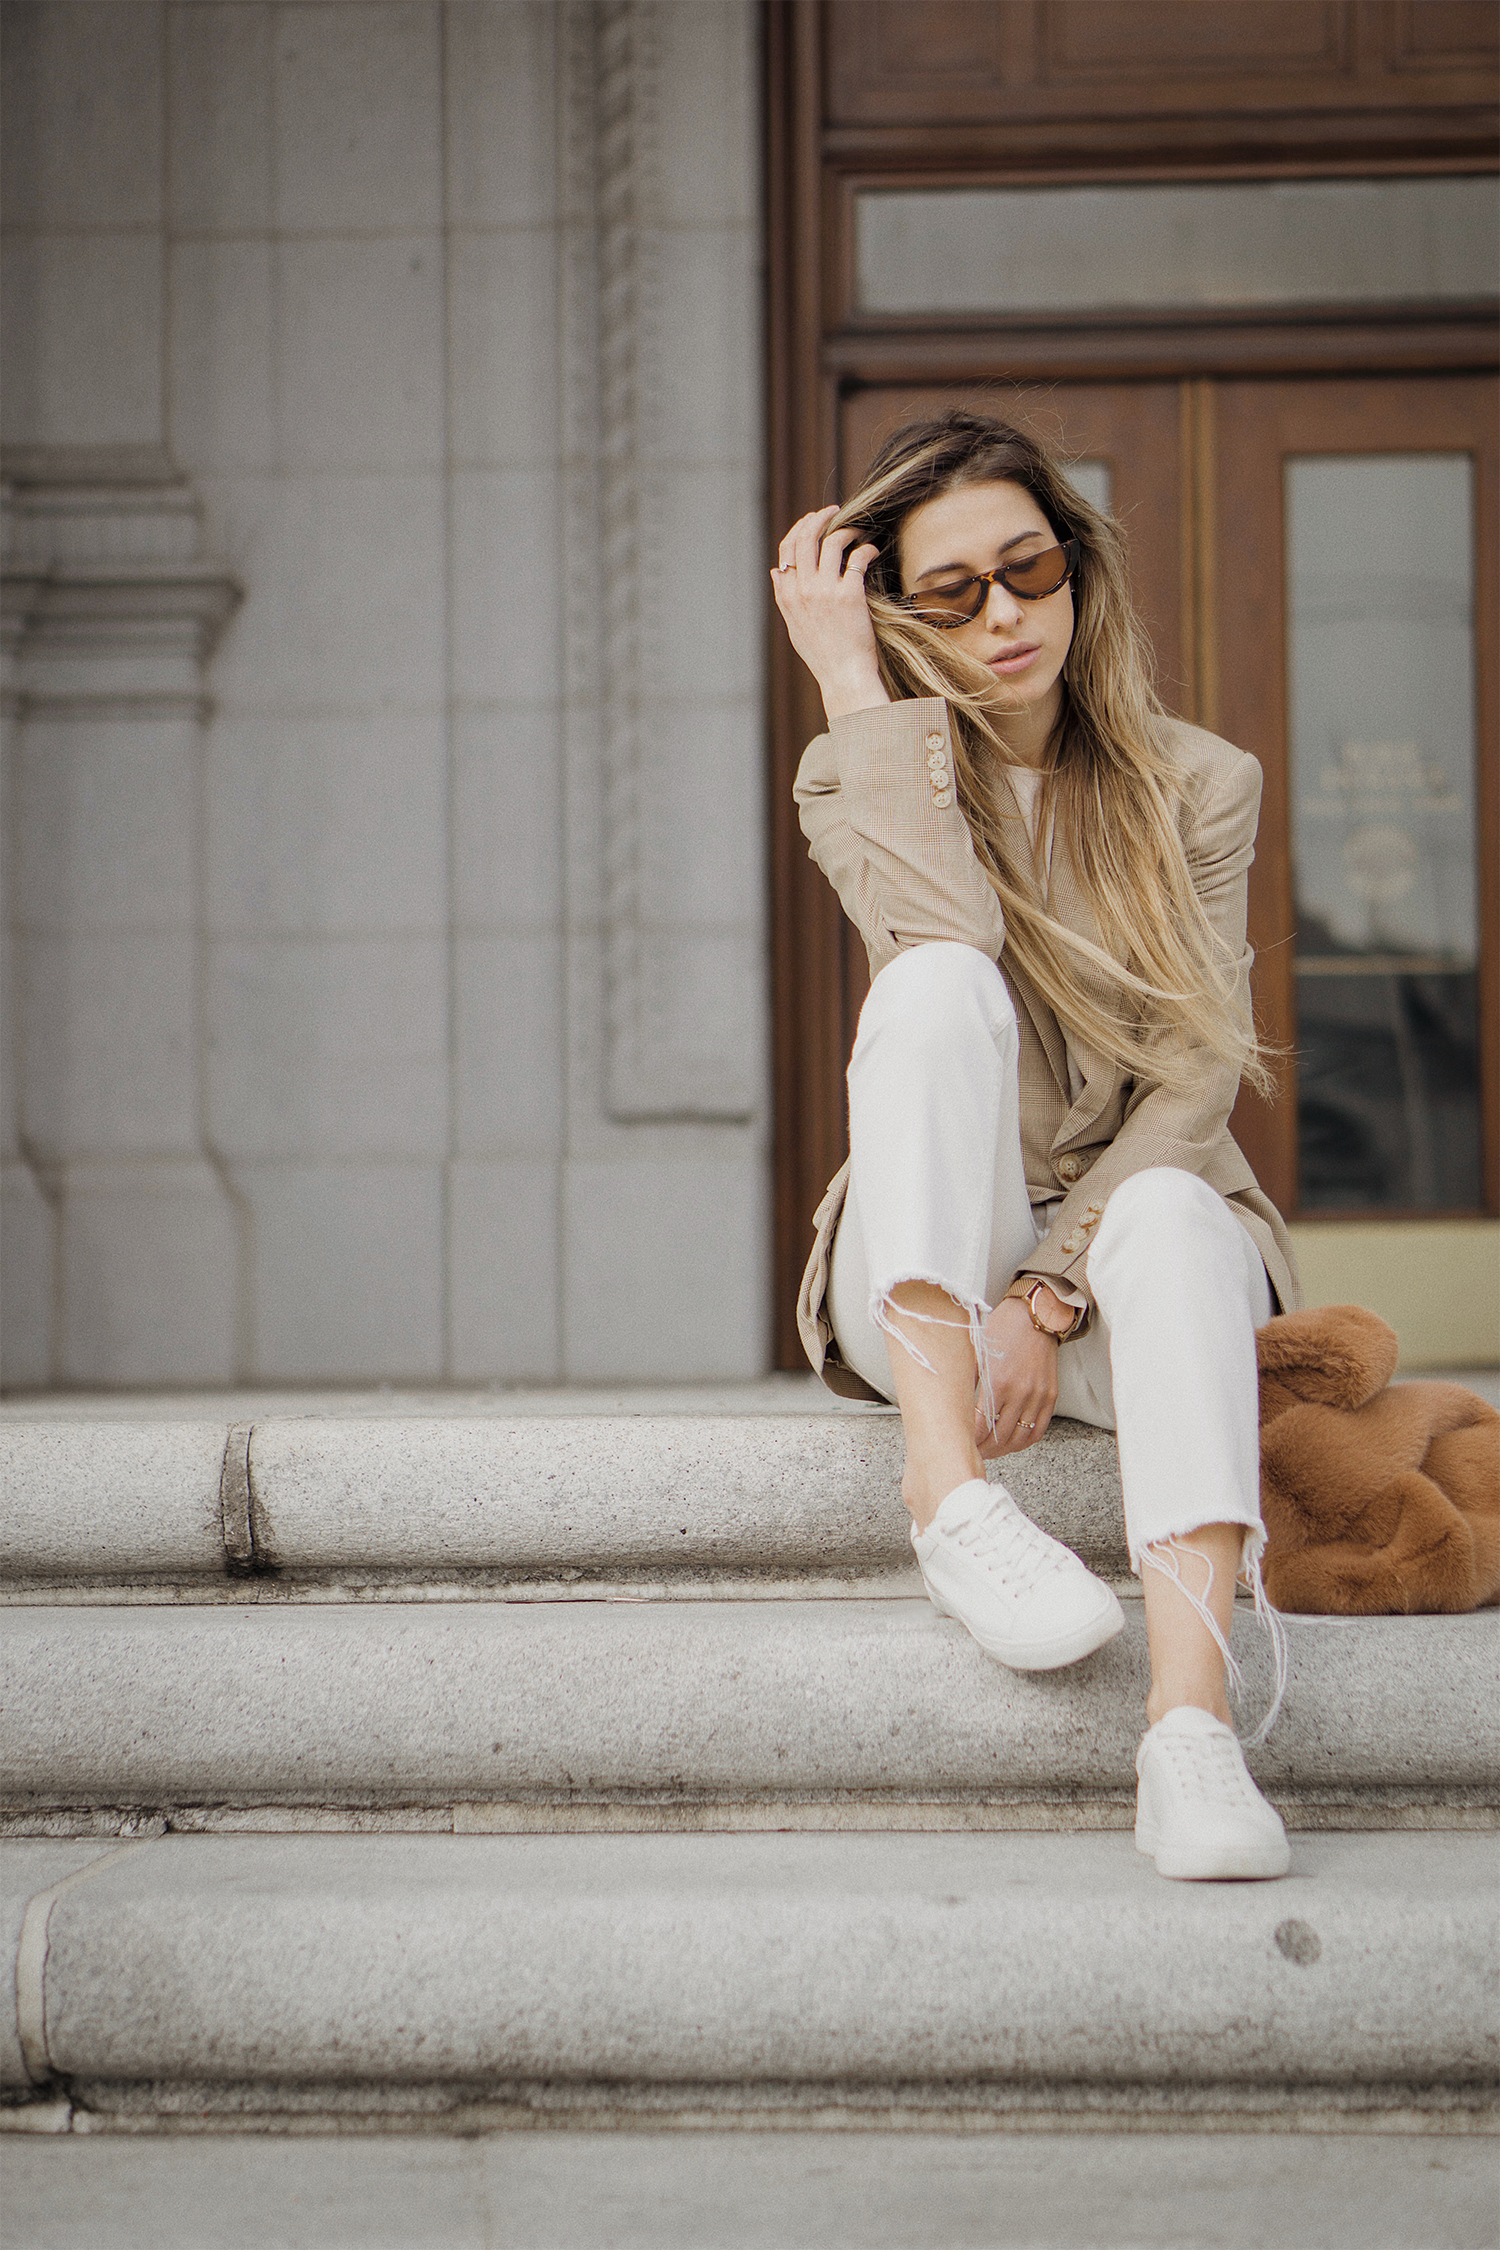 ralph_lauren_neutral_layers_outfit_fur_bag_vince_zara_trench_coat_street_style_lenajuice_thewhiteocean_06